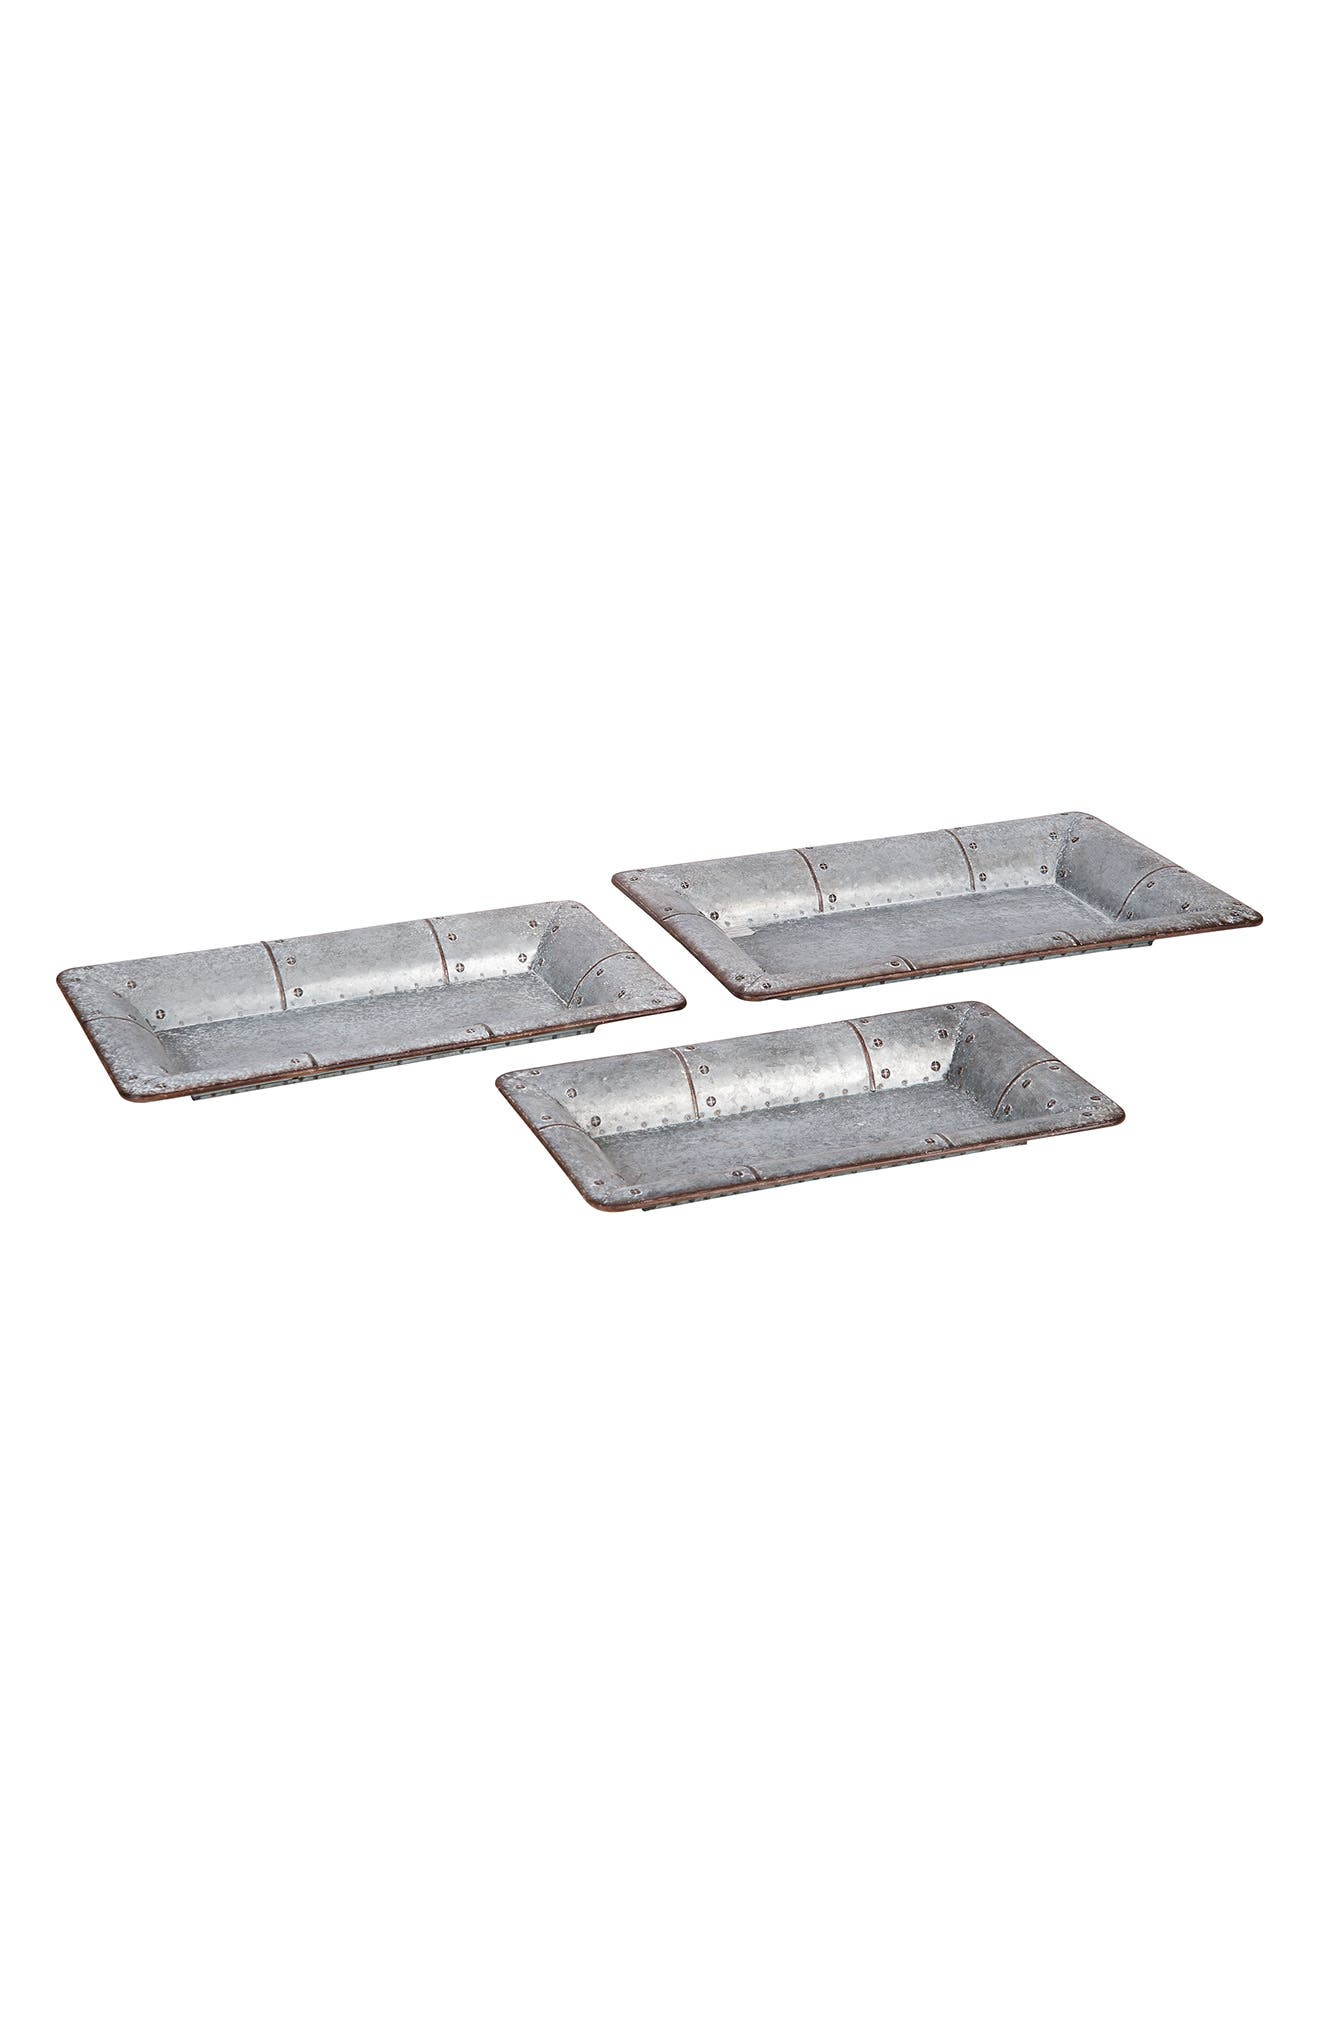 Set of 3 Hammered Trays,                             Main thumbnail 1, color,                             040